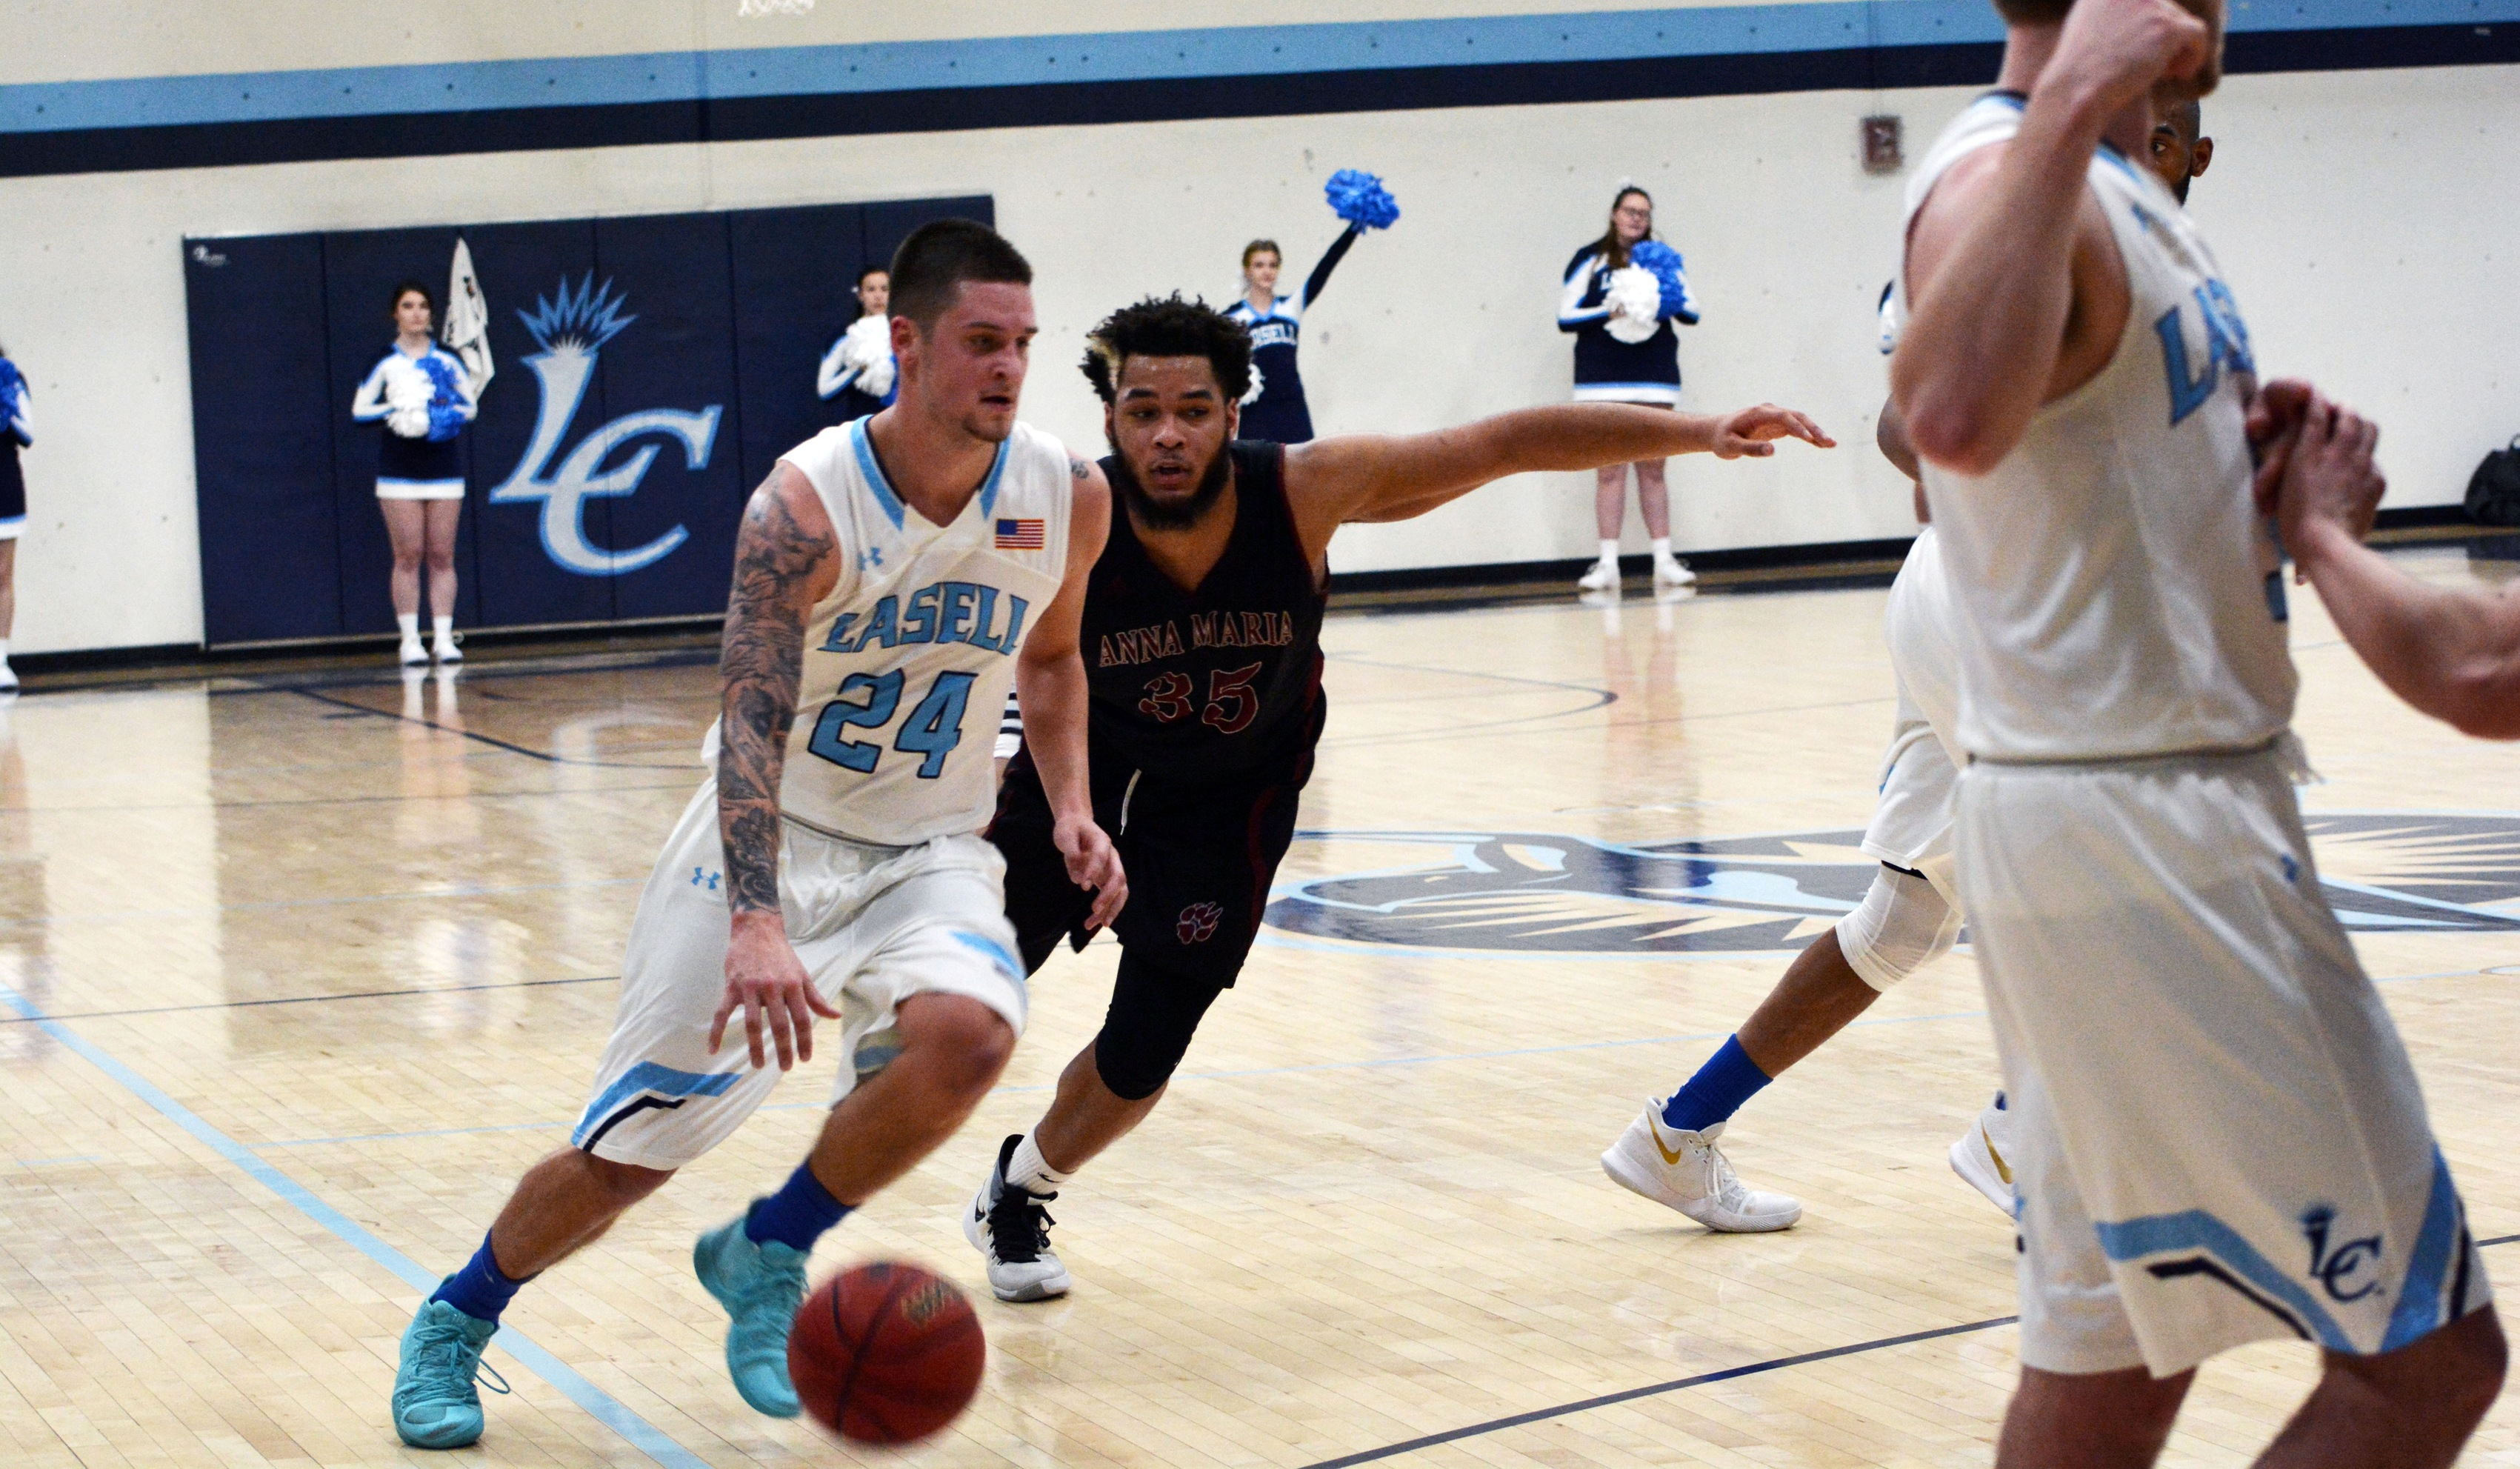 Lasell Men's Basketball comes back to defeat Anna Maria